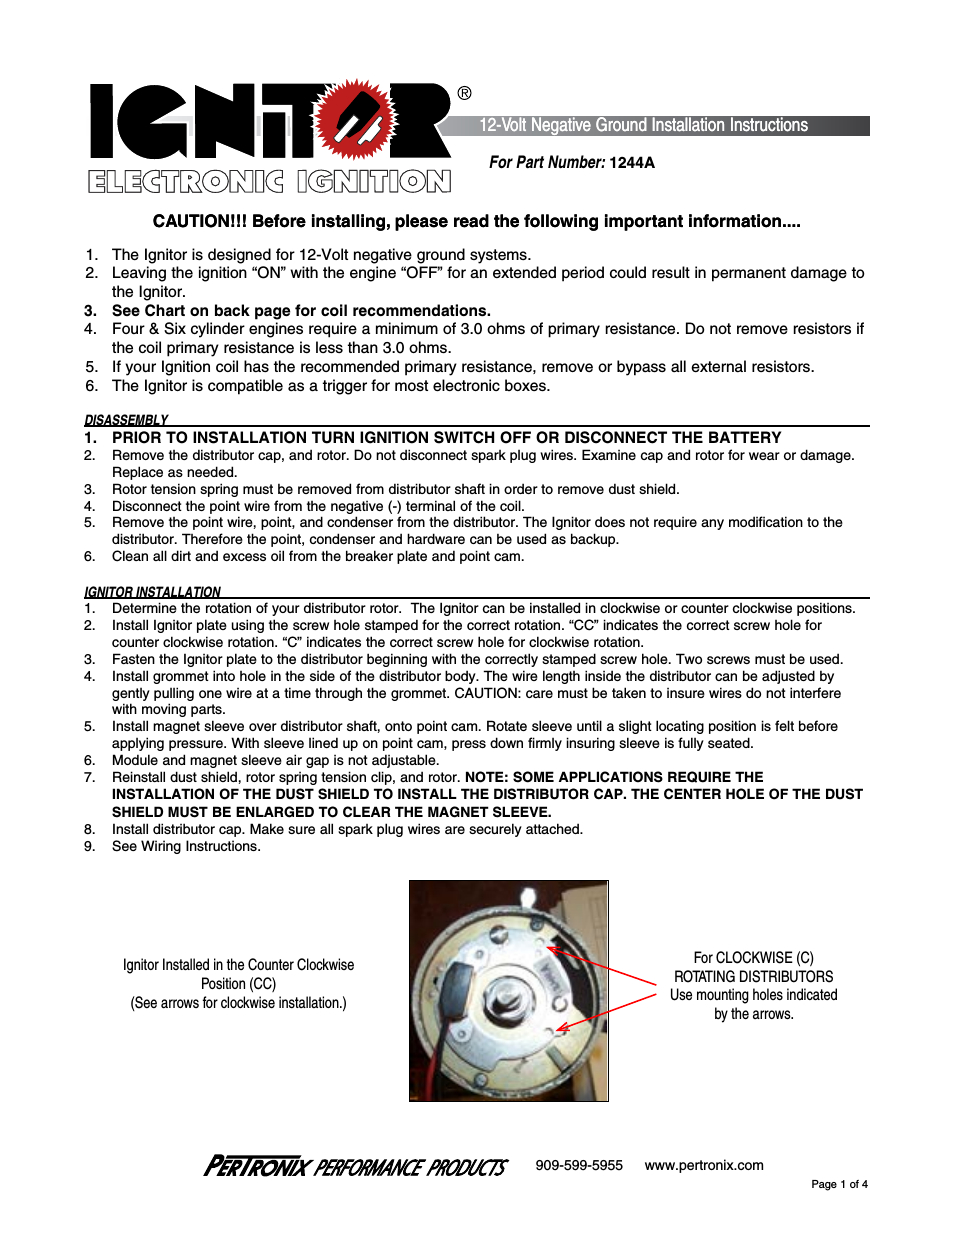 Pertronix Ignitor 1244A User Manual | 4 Pages - Pertronix Ignitor Wiring Diagram